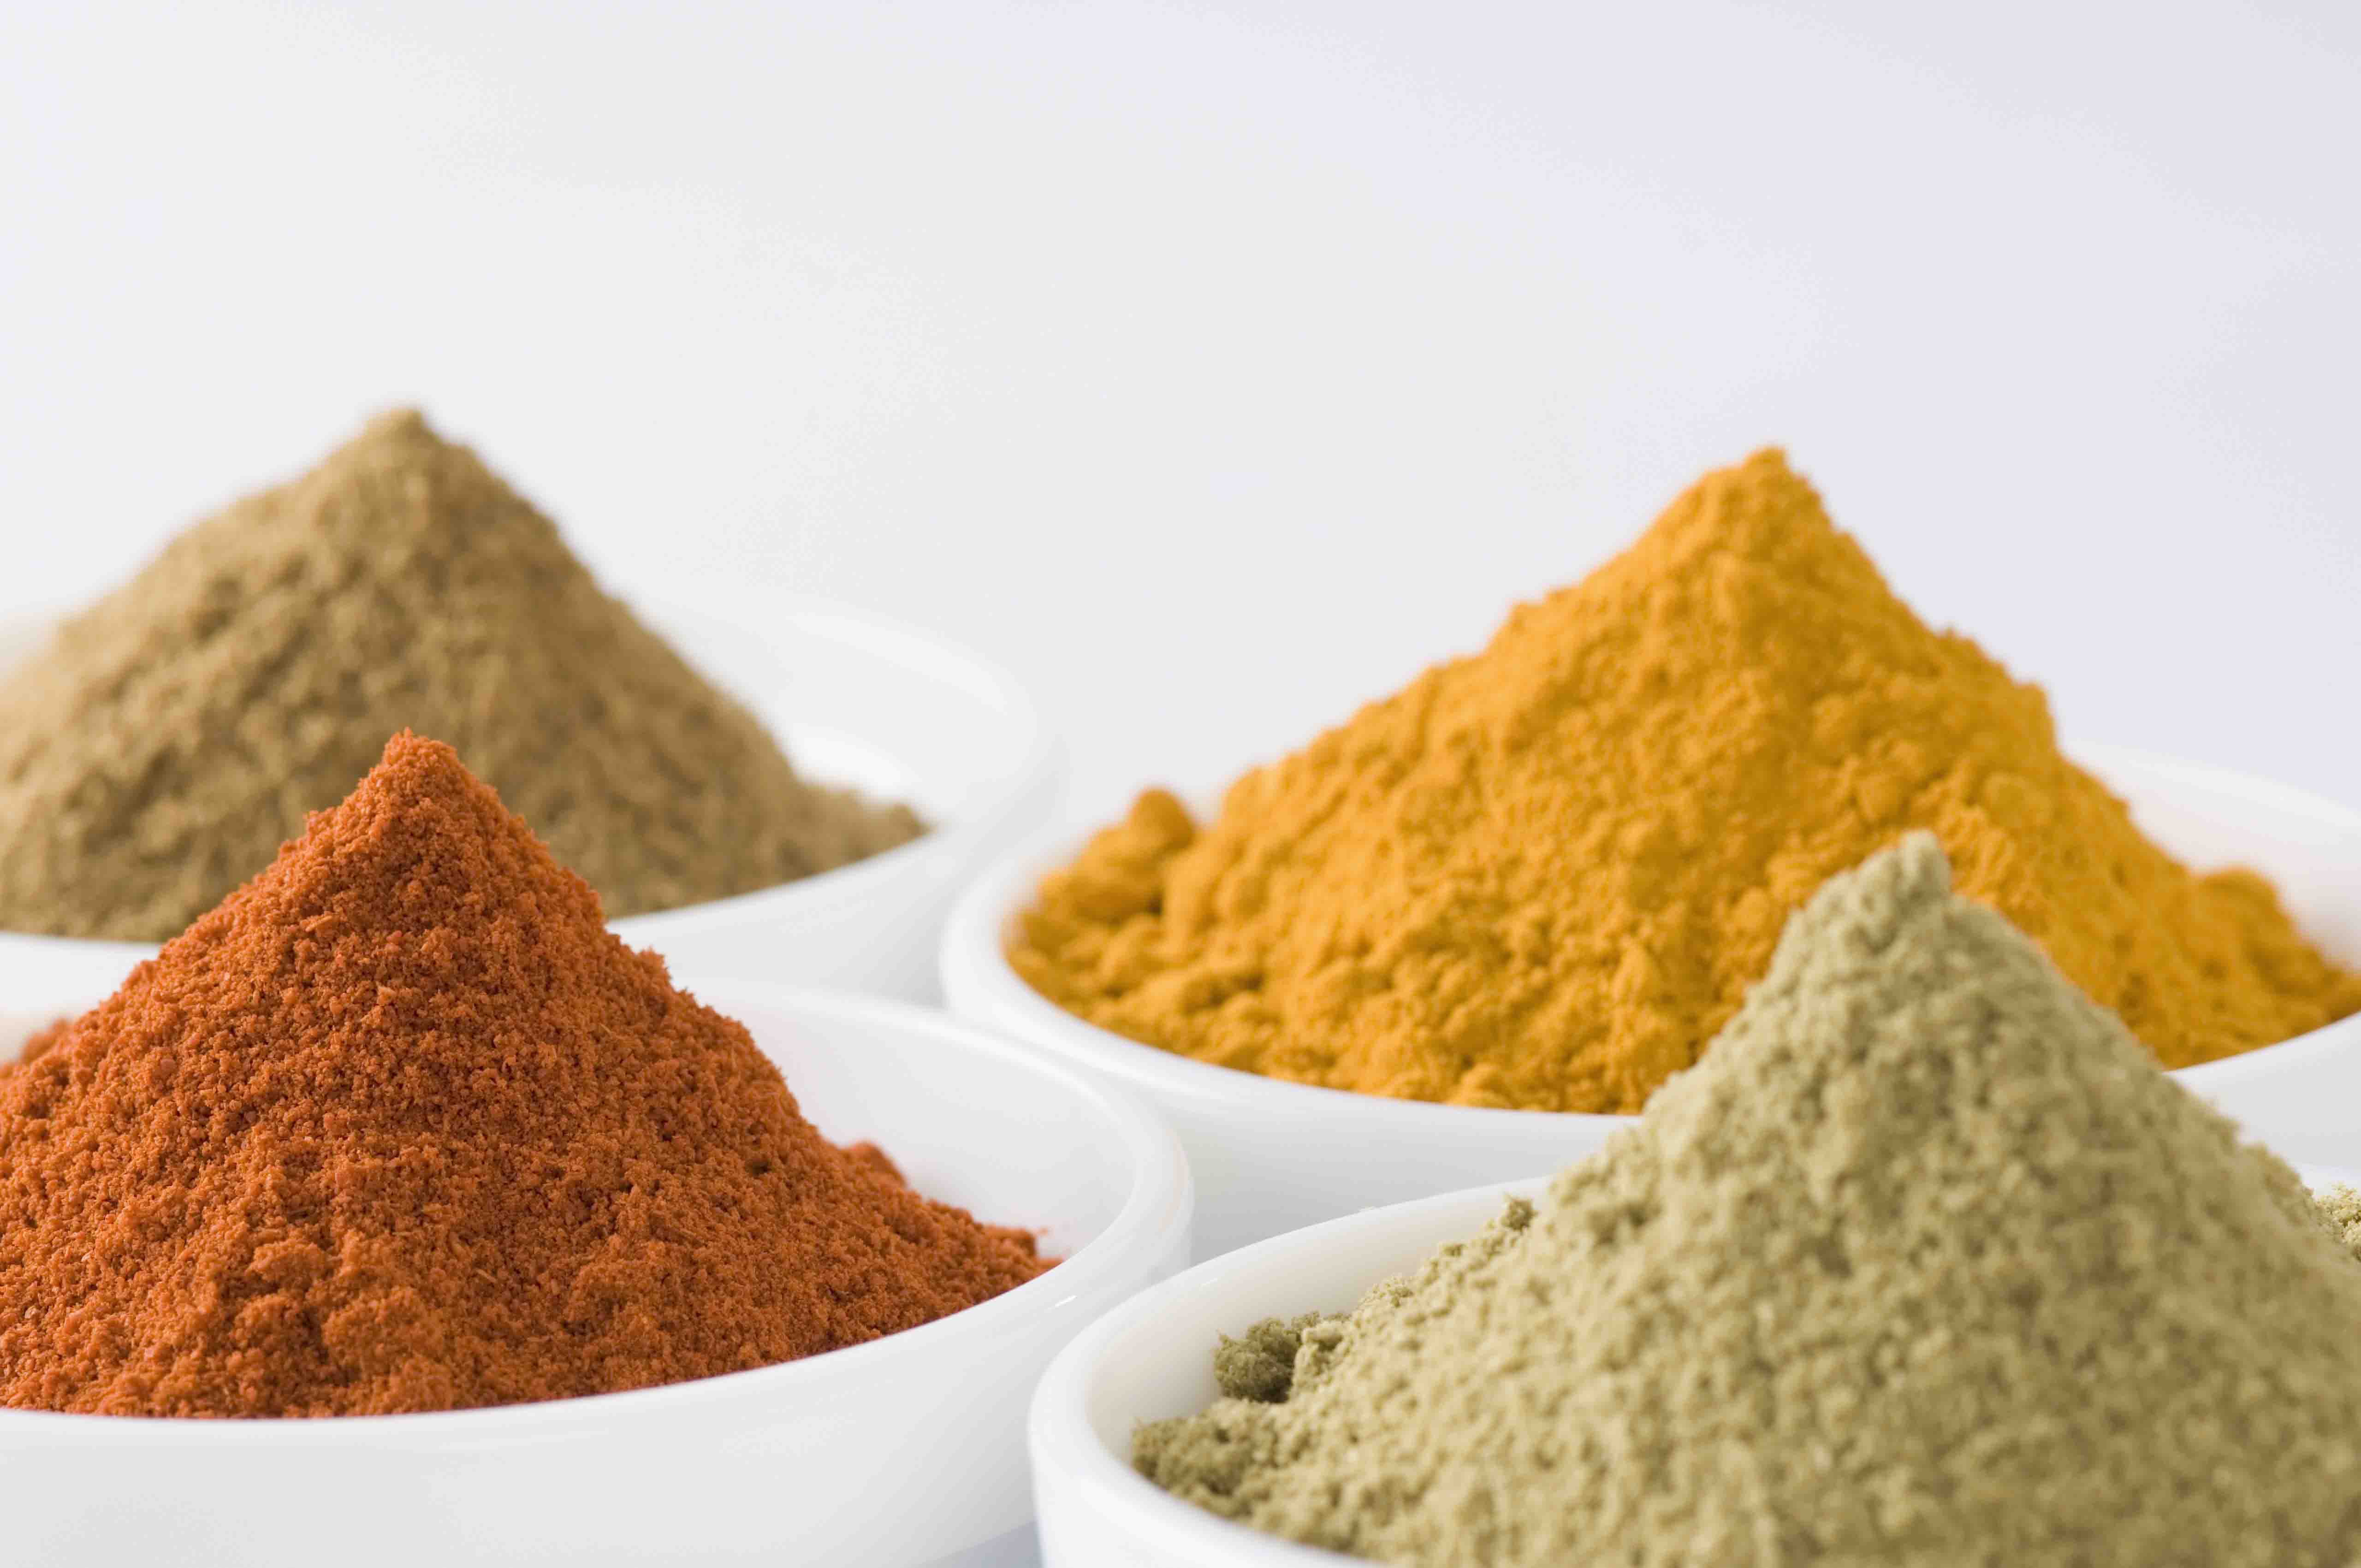 four-bowls-of-masala-and-spice